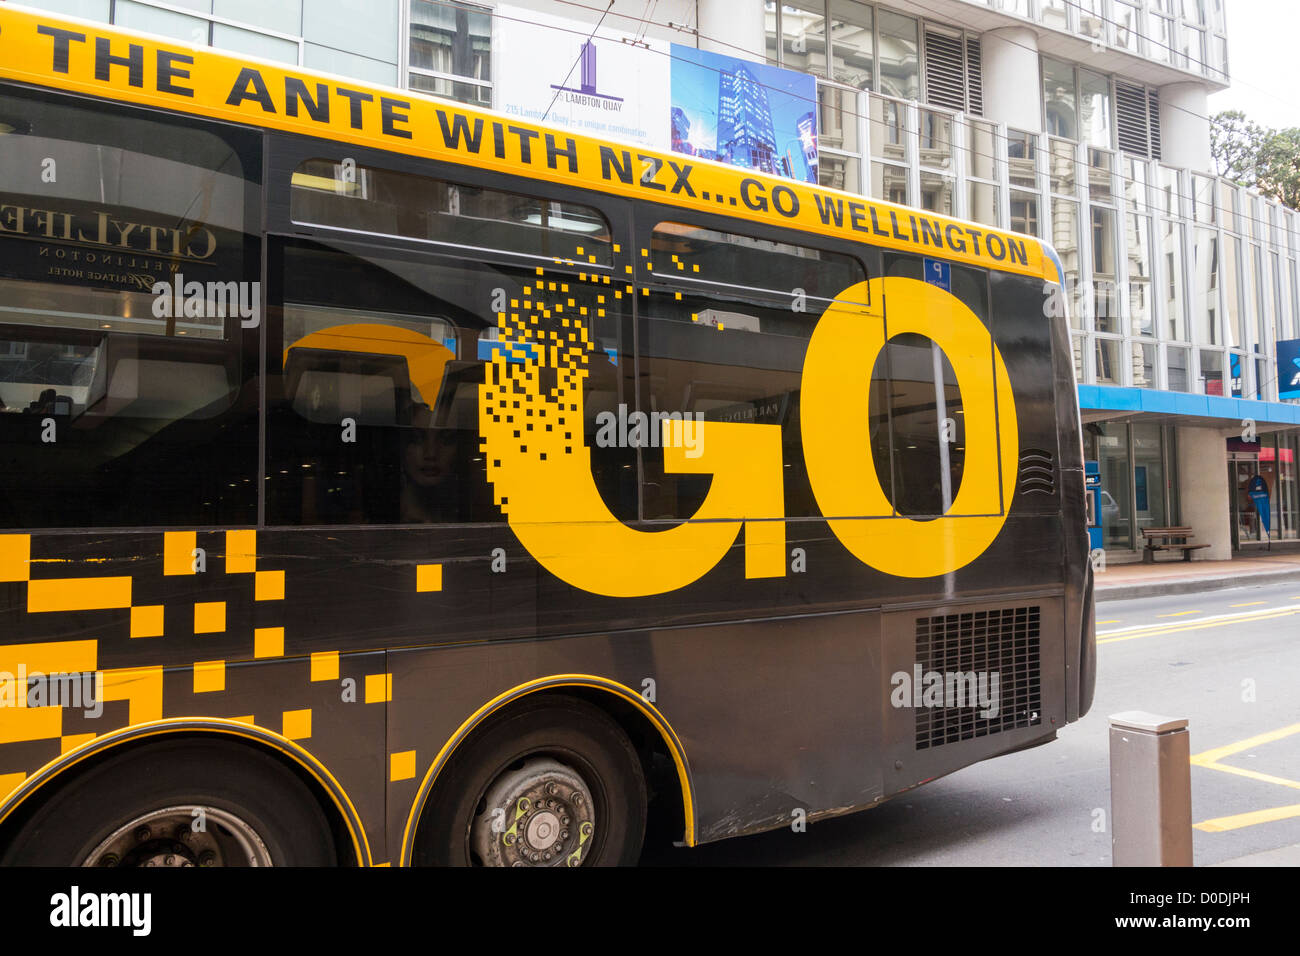 Wellington bus with the slogan Go Wellington painted on the side. - Stock Image